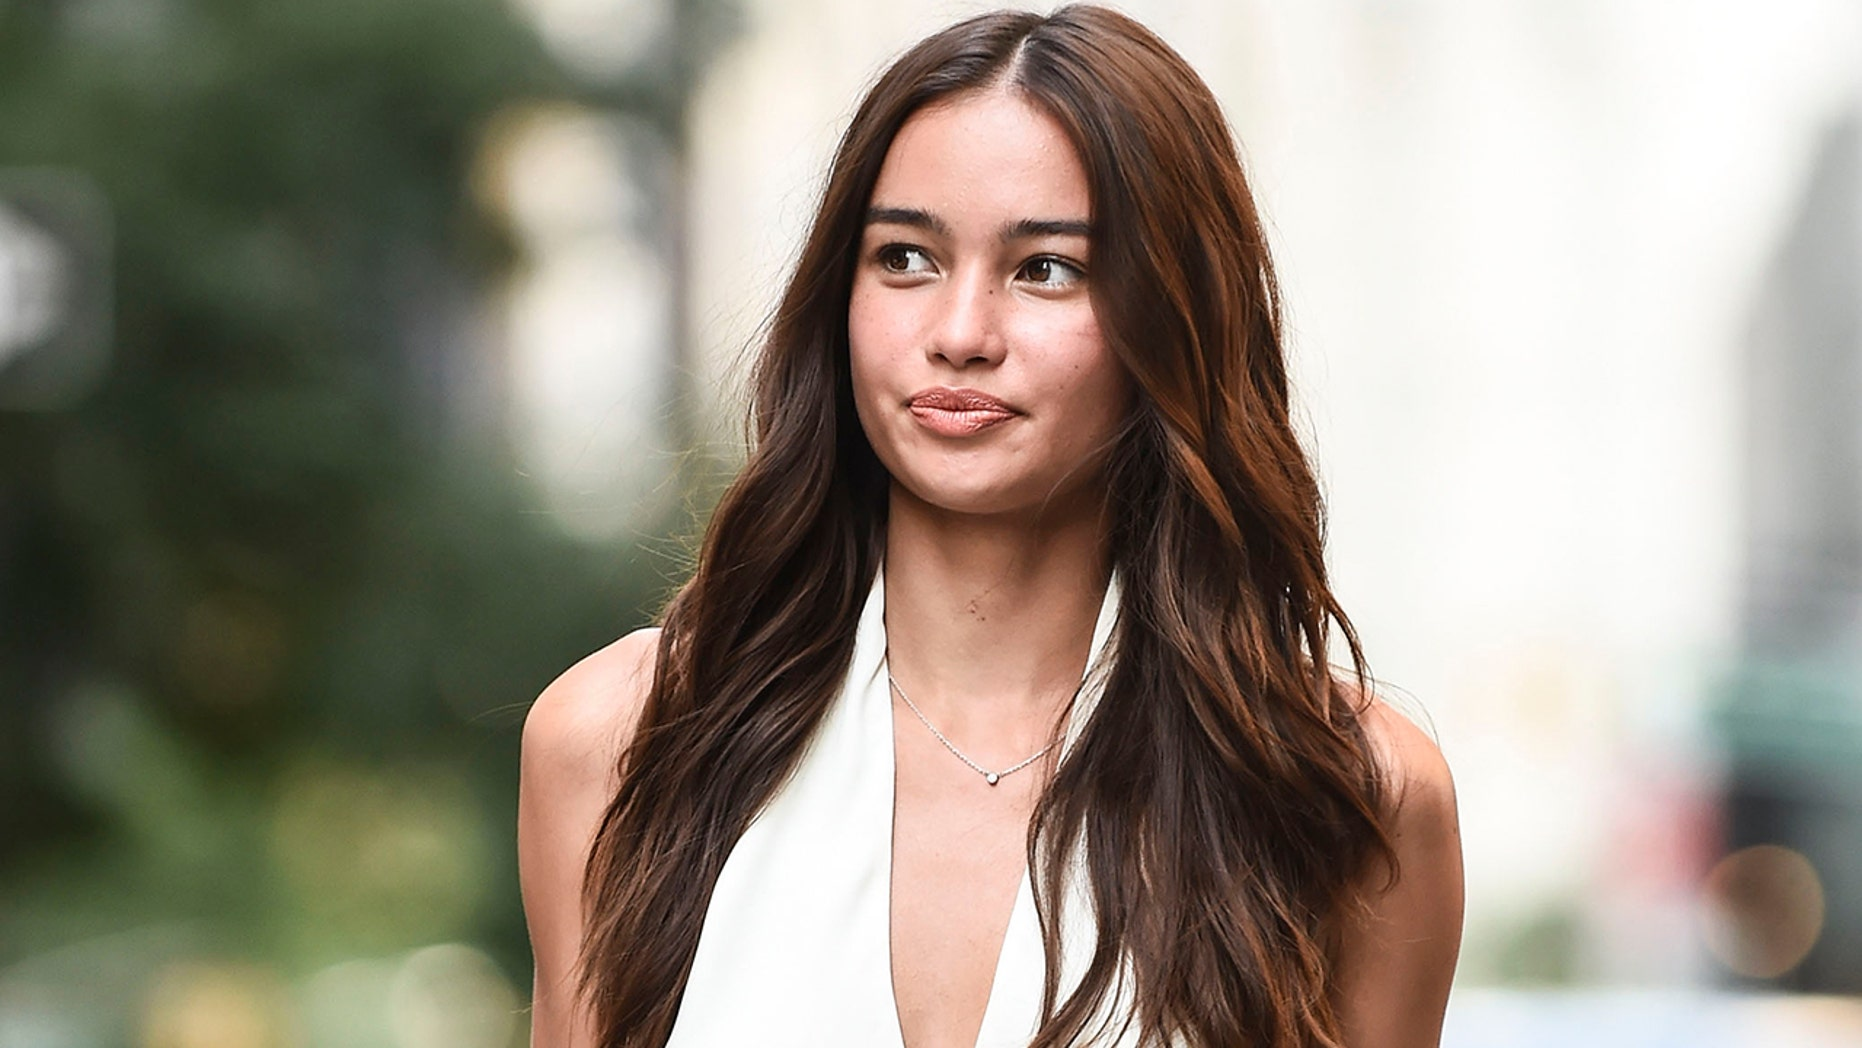 Kelsey Merritt makes impressive debut at Victoria's Secret Fashion Show 2018